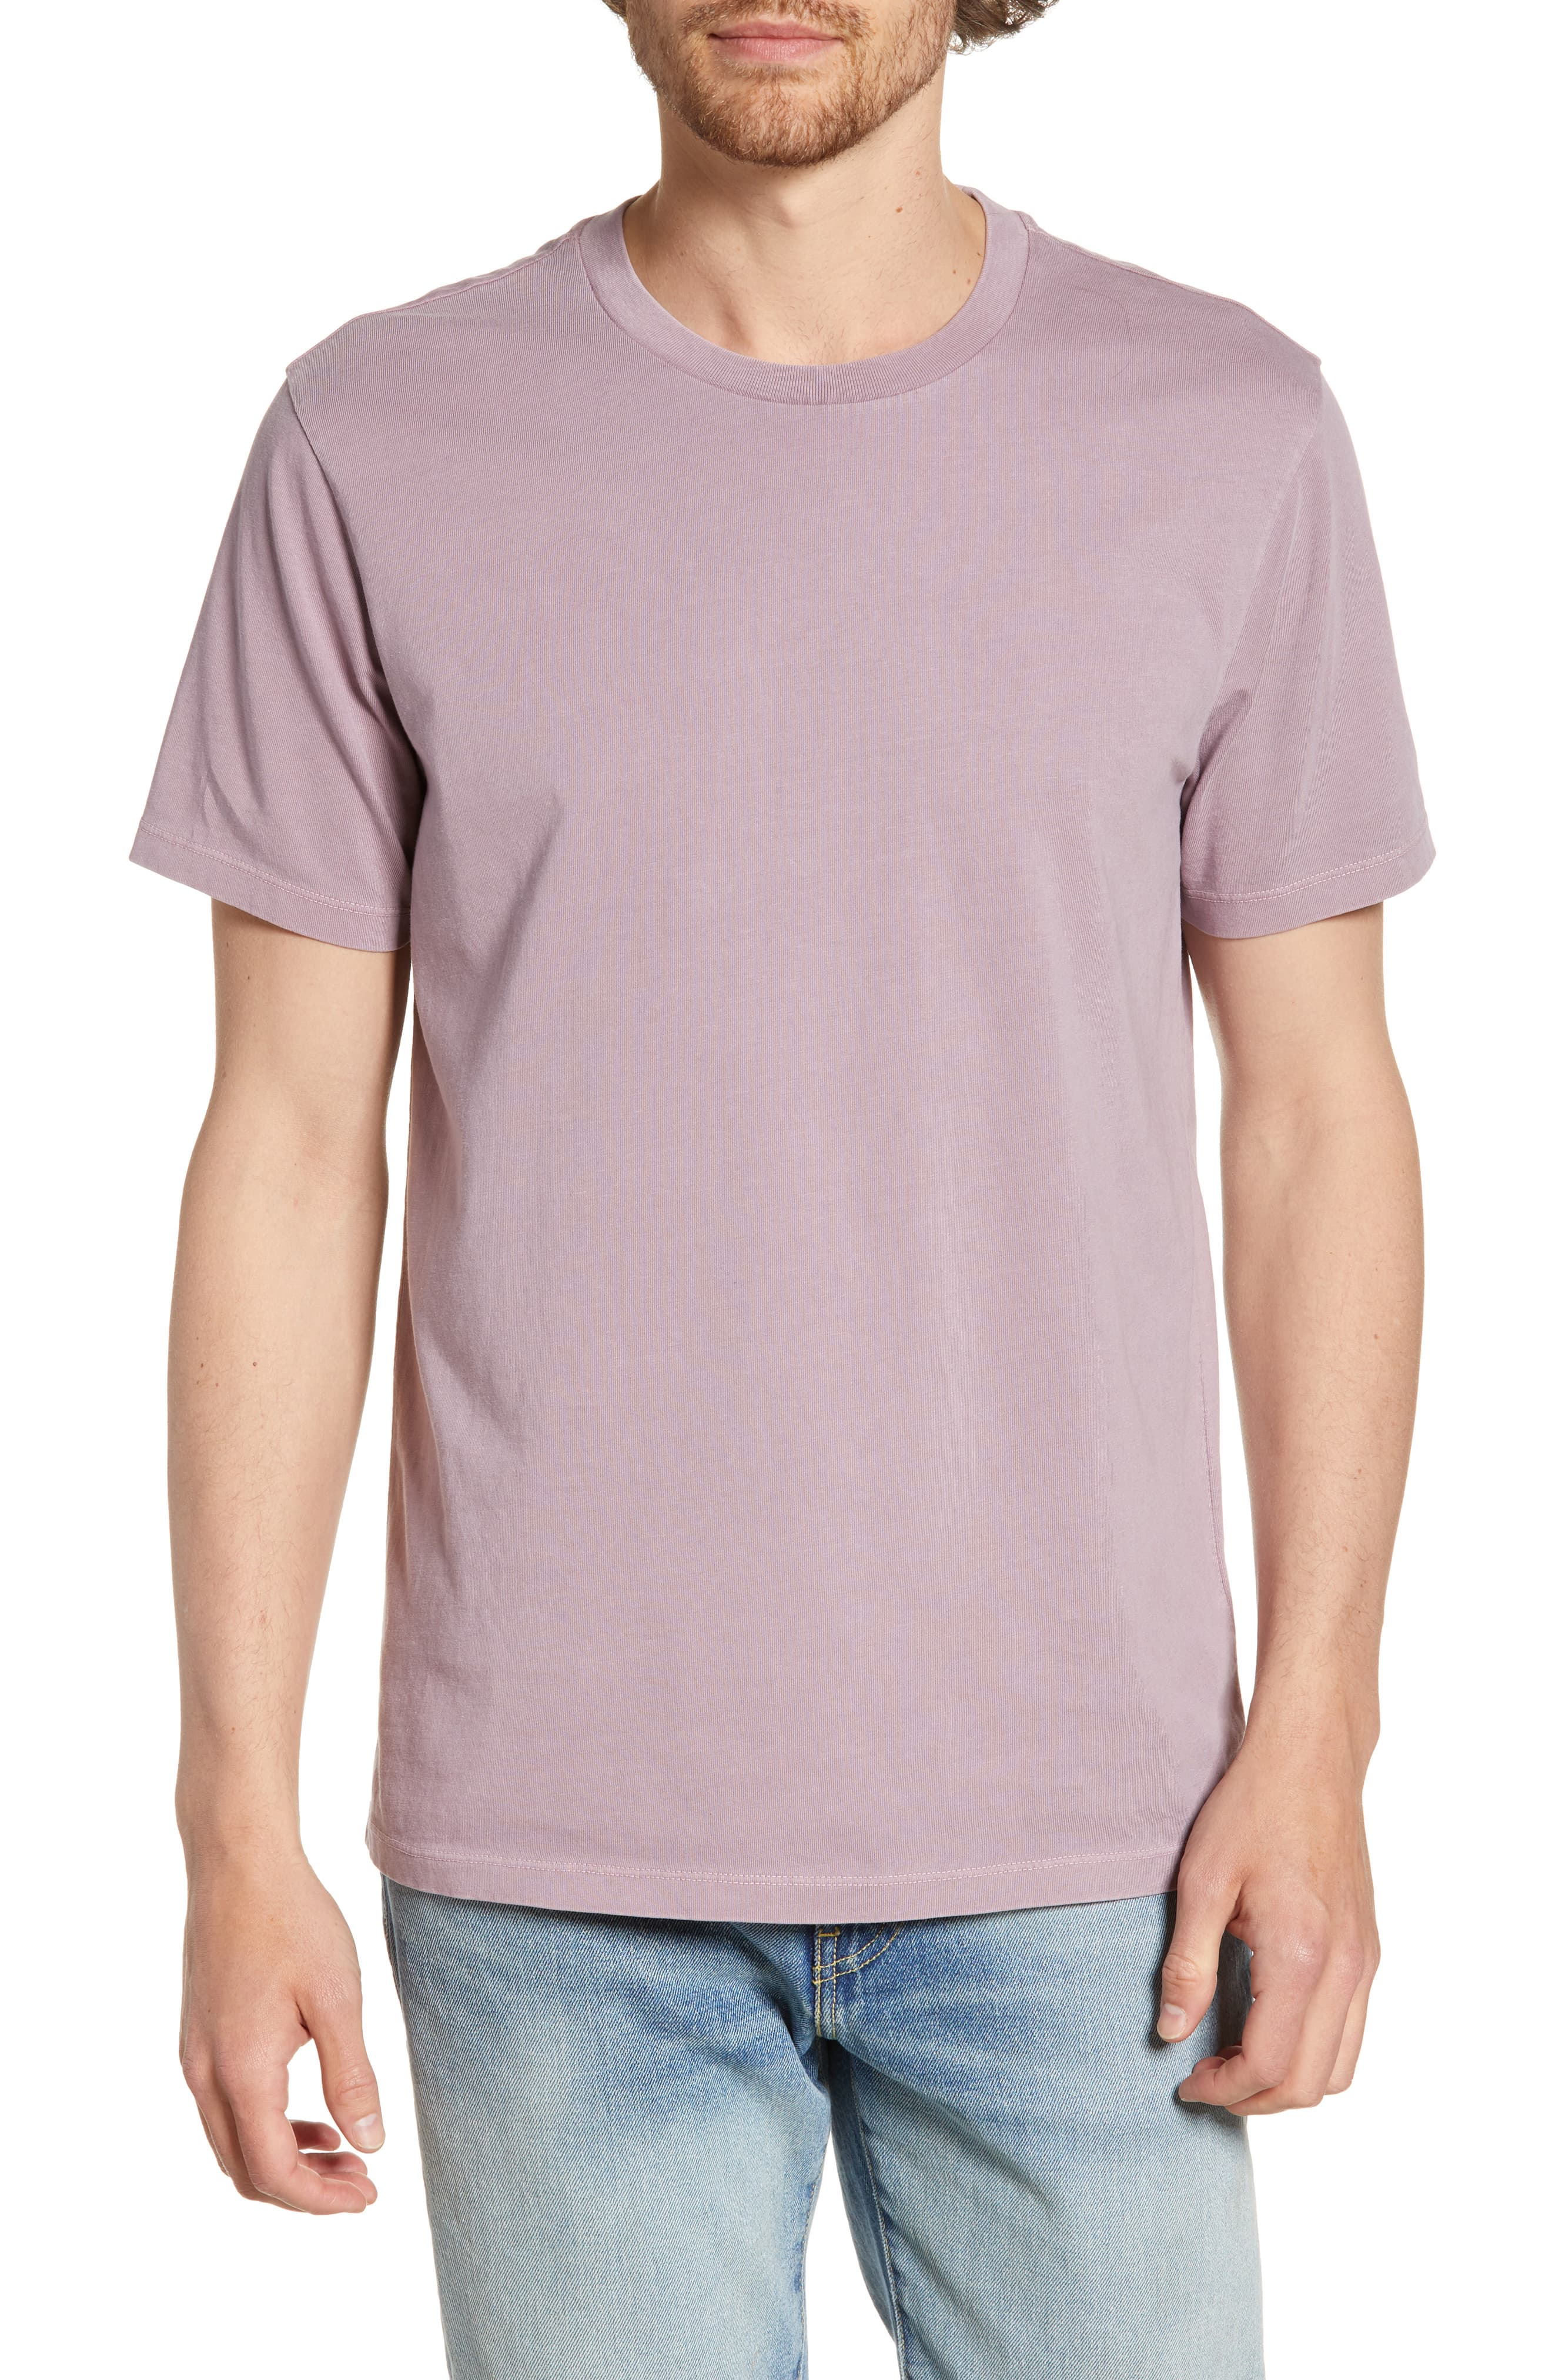 Men's Madewell Allday Slim Fit Garment Dyed T-Shirt, Size Large - Purple